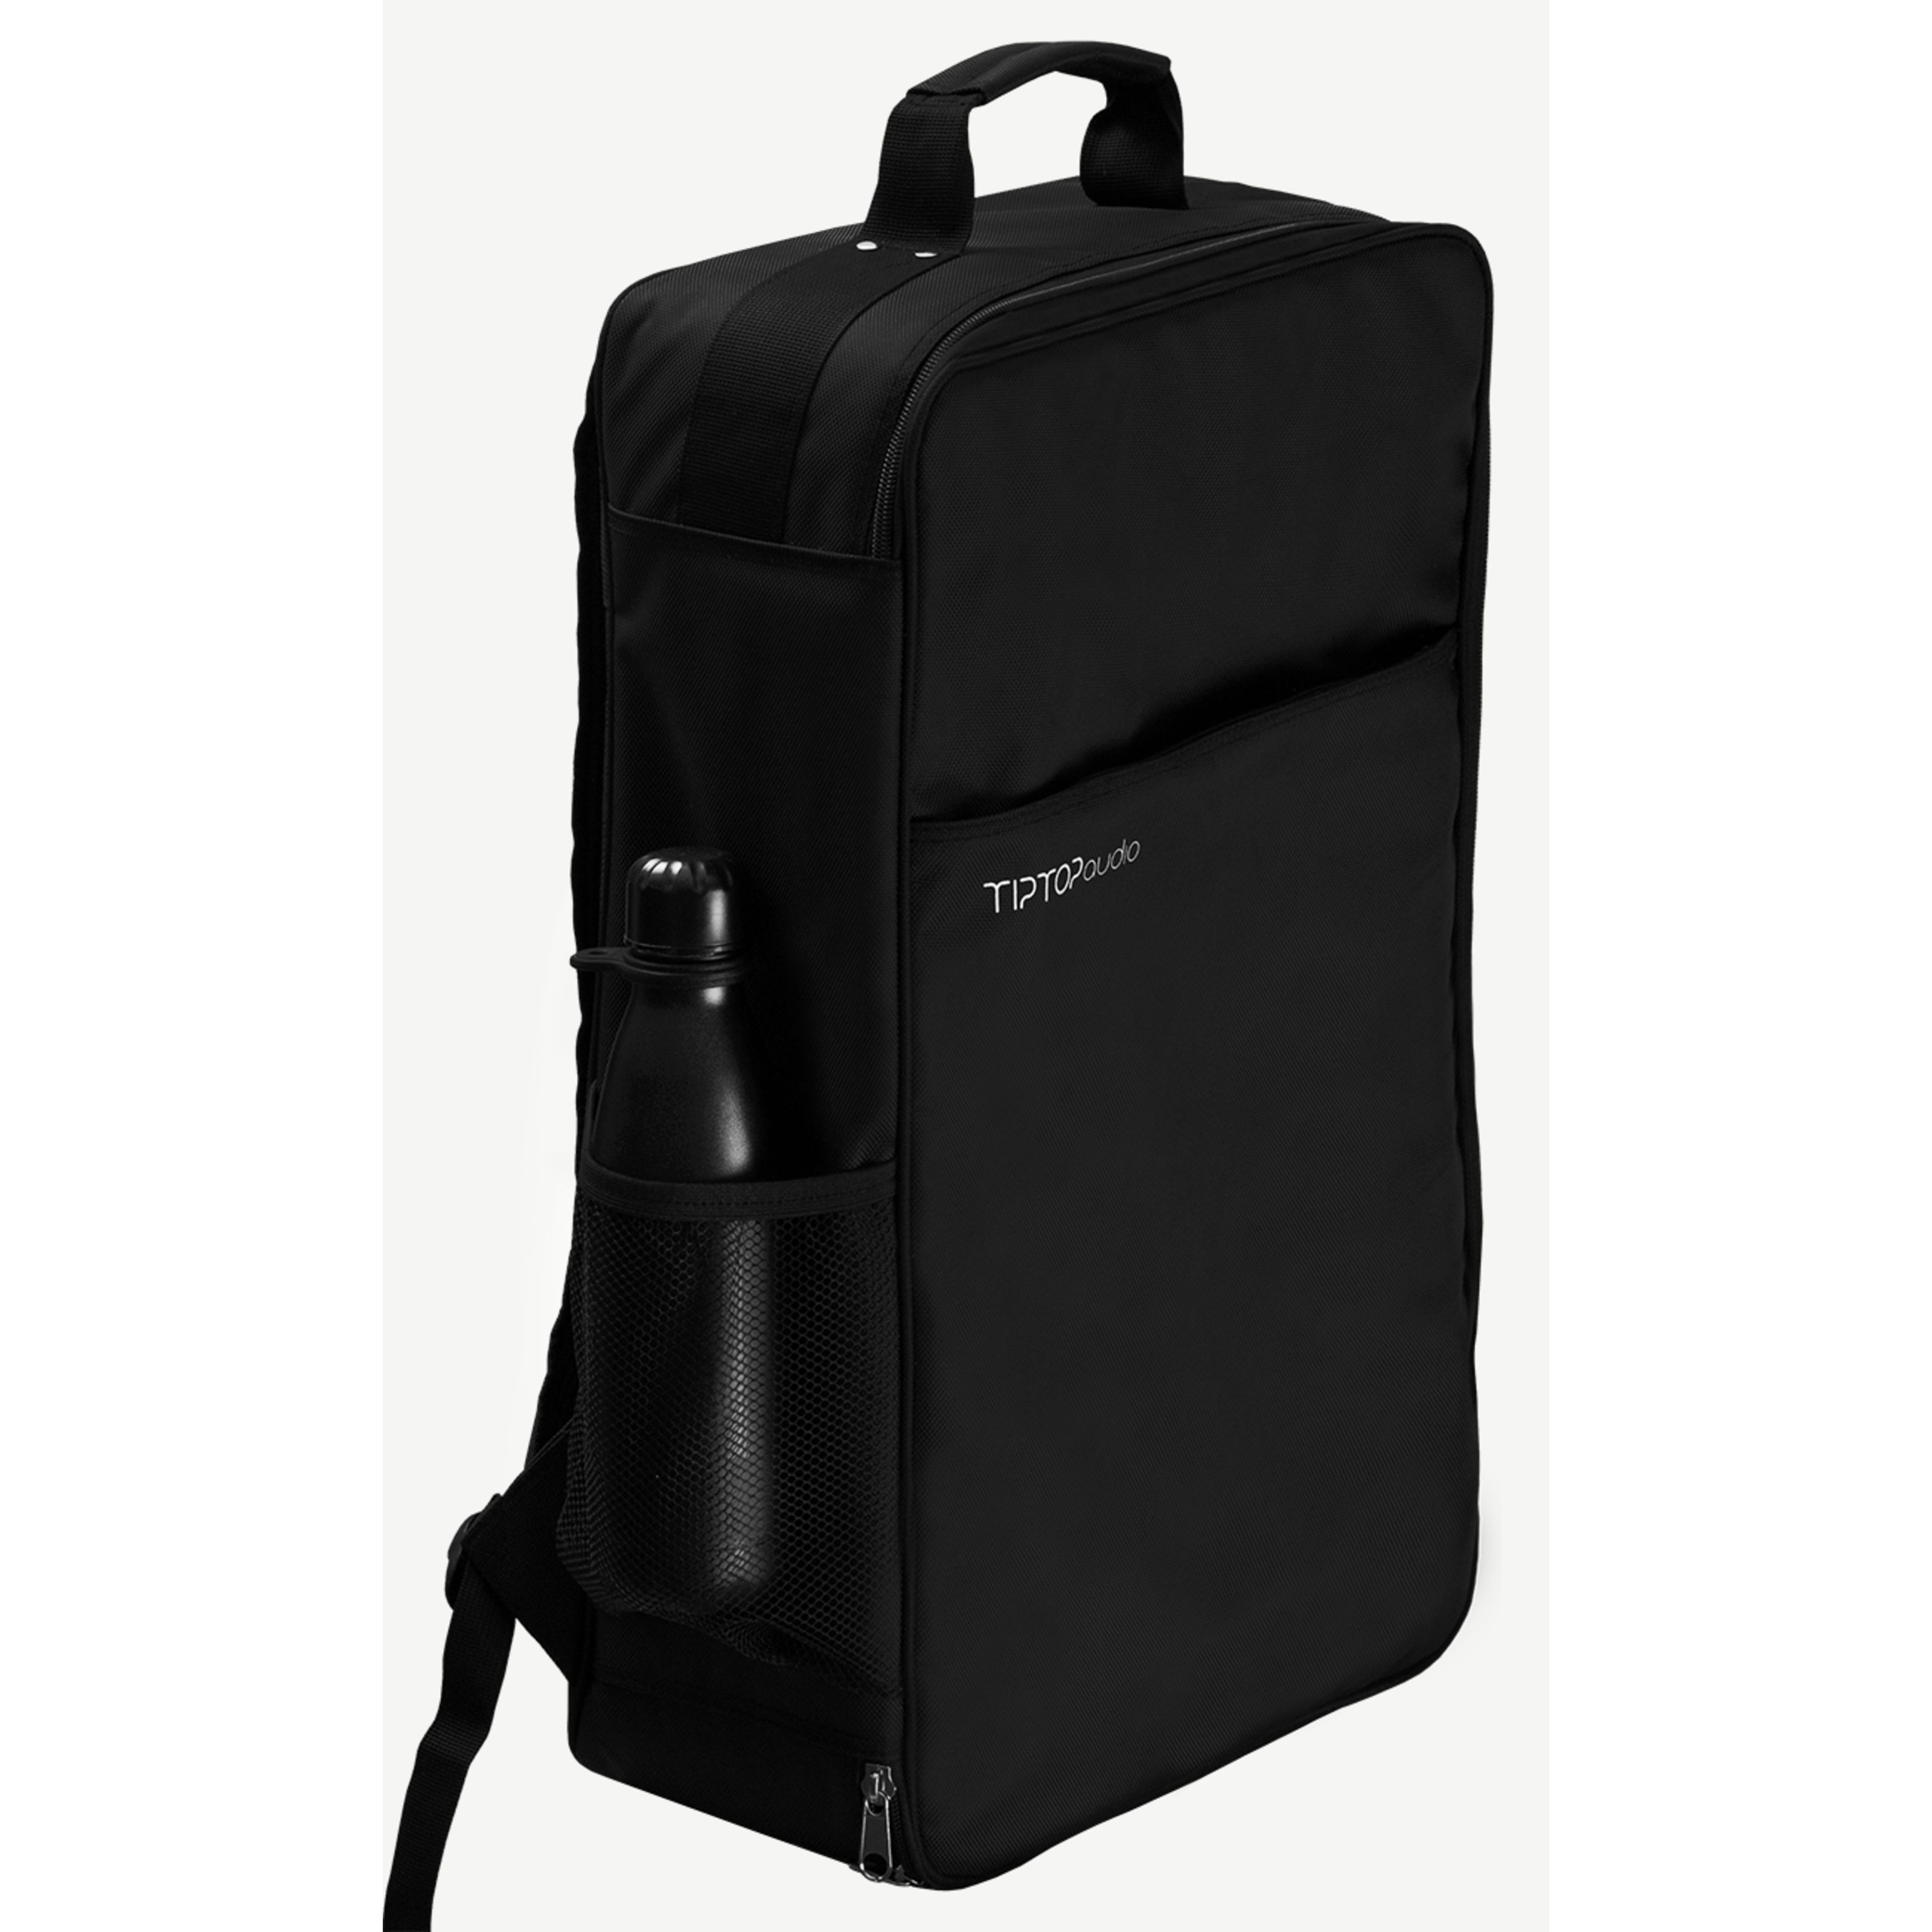 Tiptop Audio - Mantis Travel Bag Trans Mantis Express Mantis Bag Trans Man